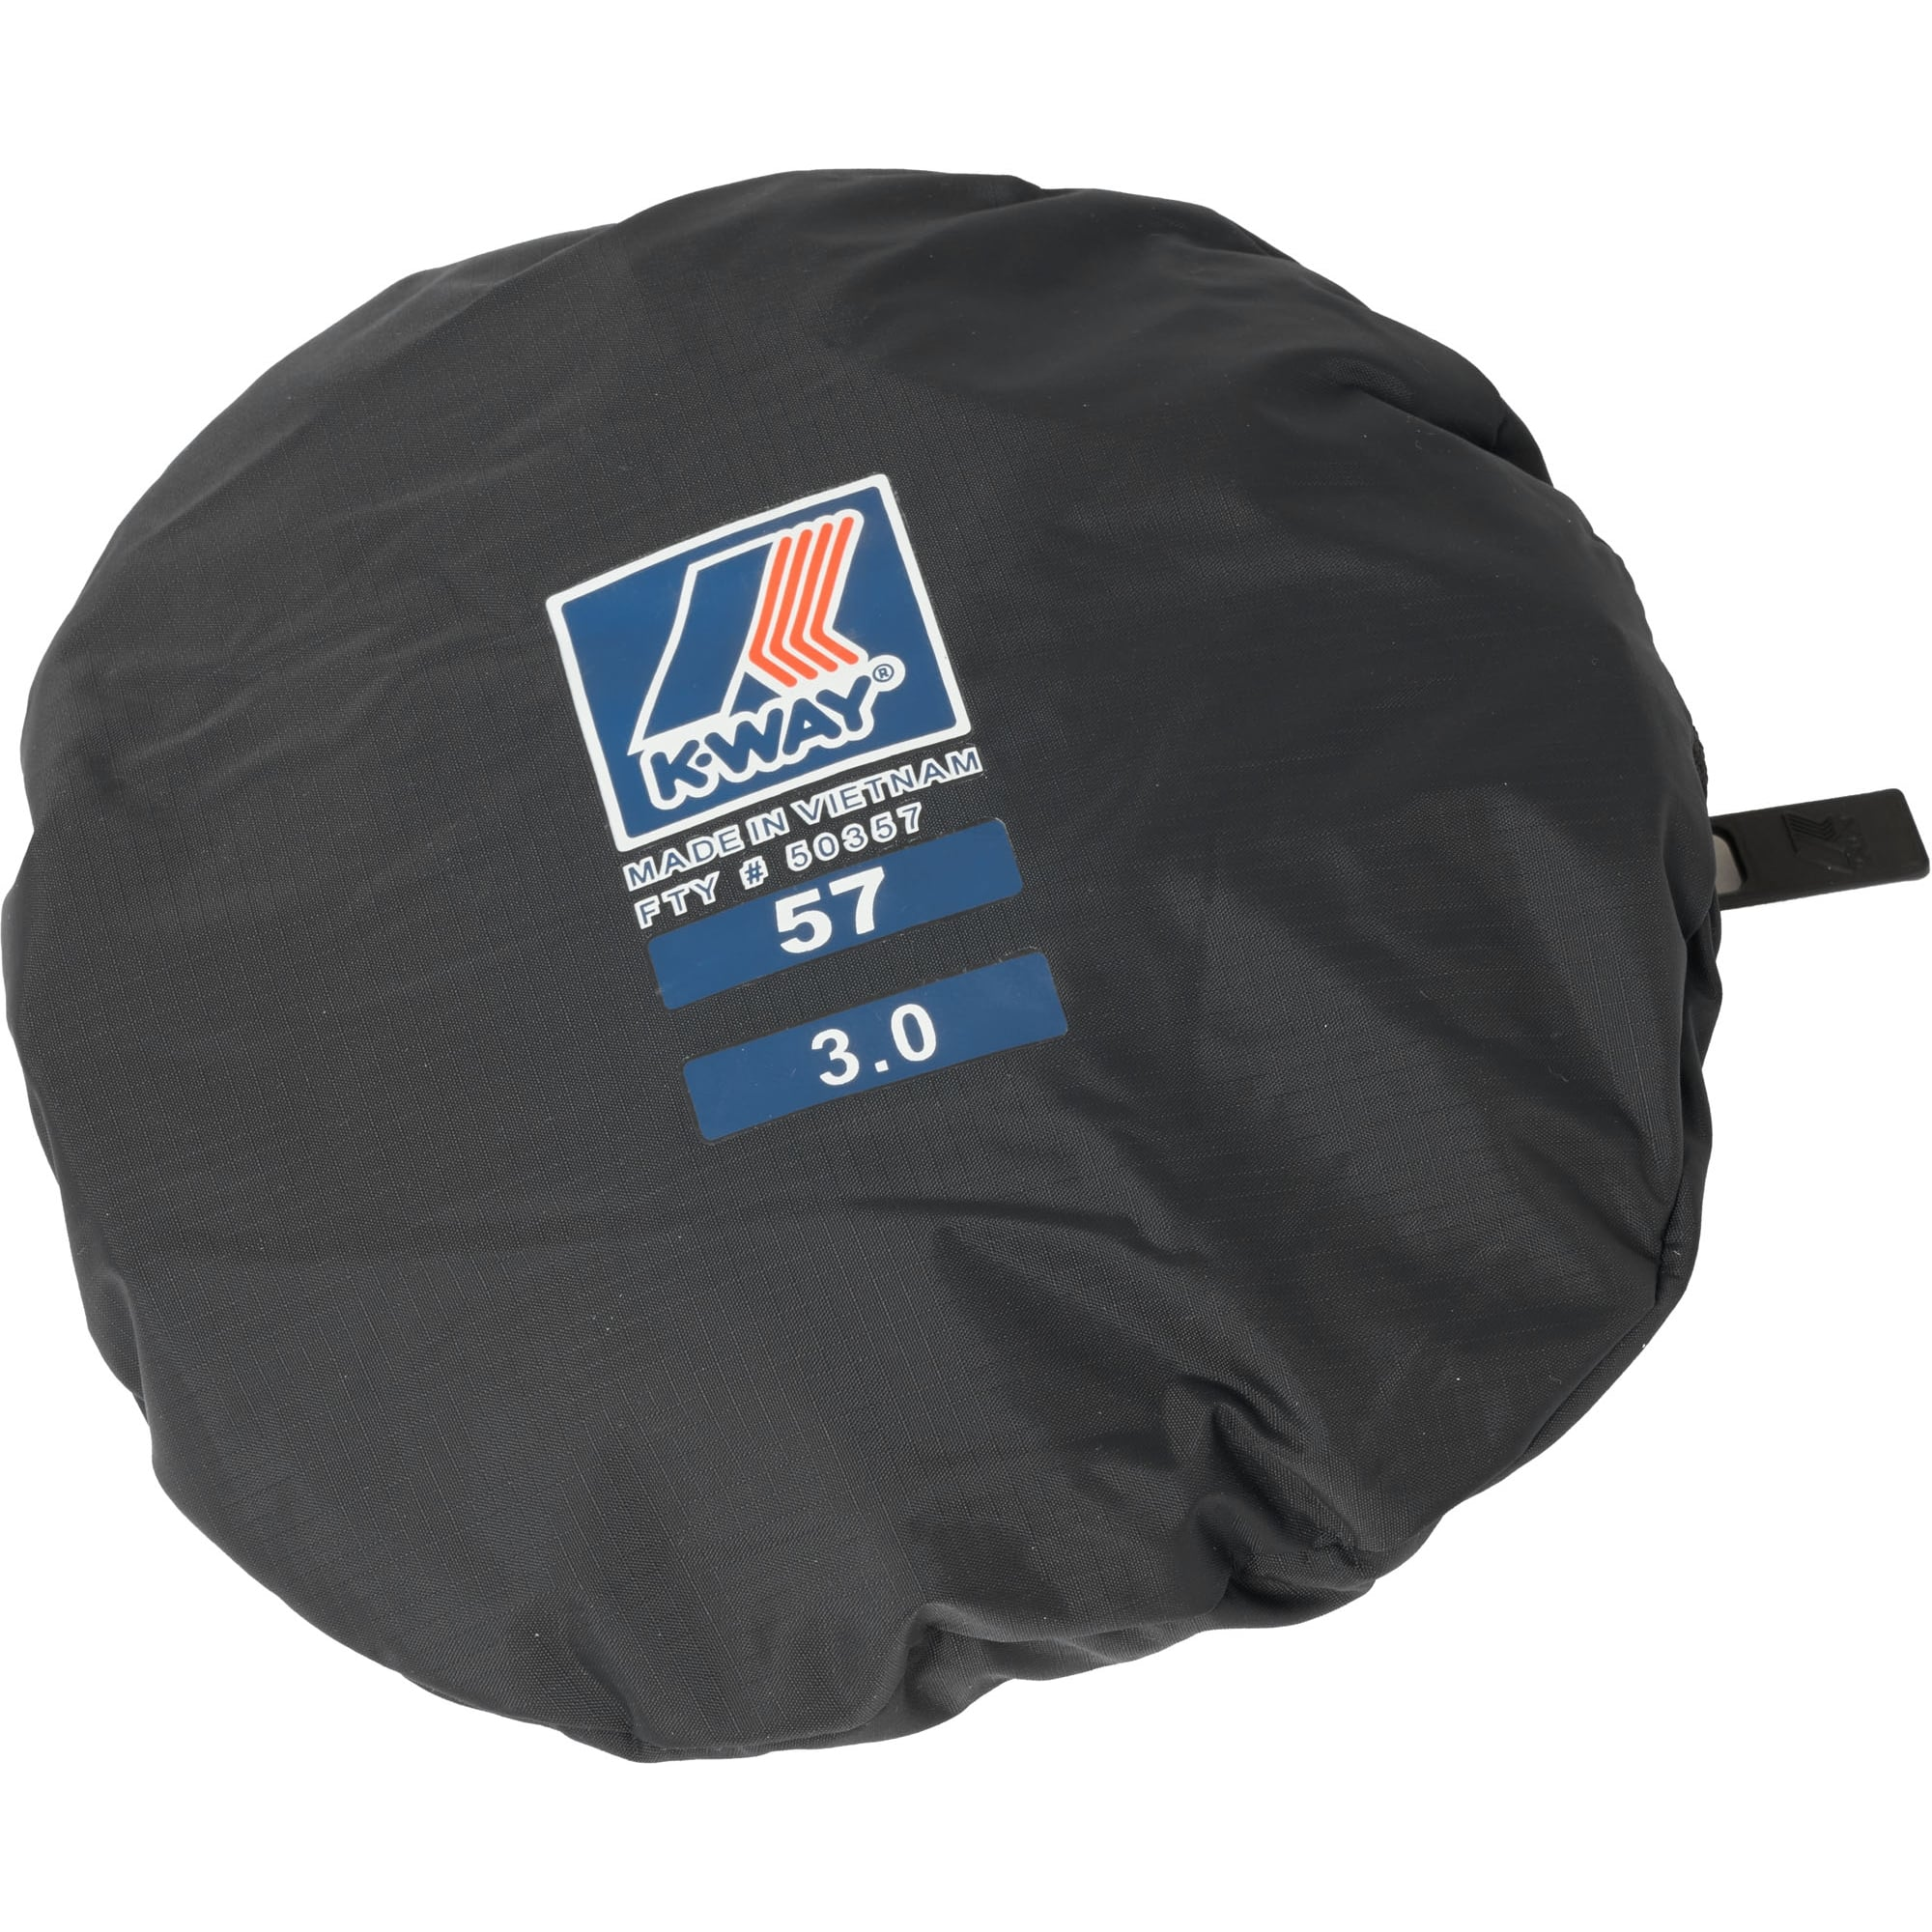 d1cd8149b Black Le Vrai Pascal 3.0 Packable Bucket Hat